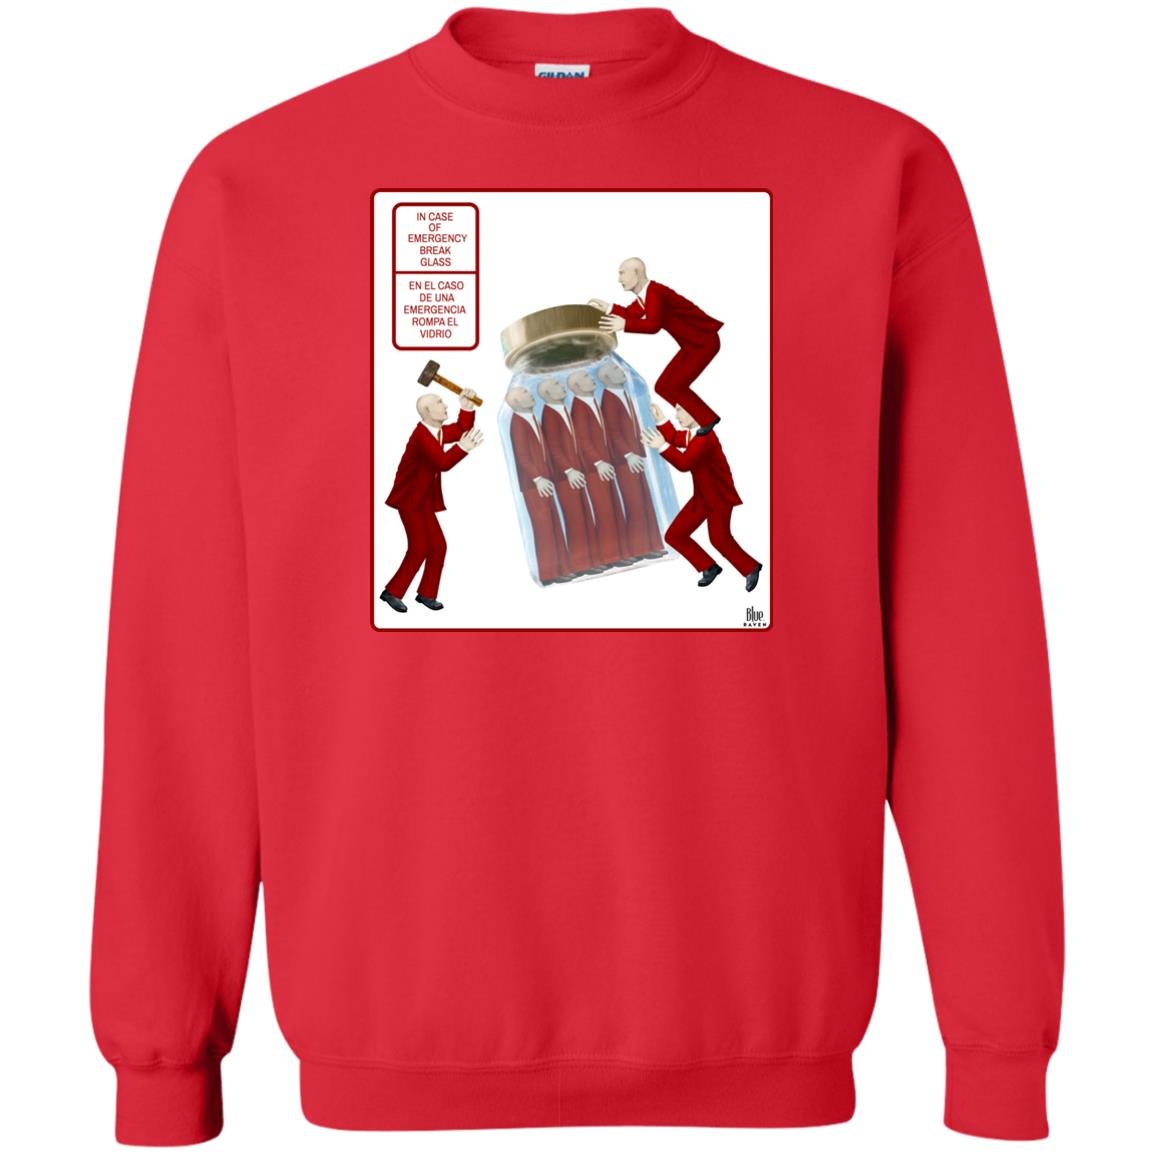 BREAK GLASS - Men's Crew Neck Sweatshirt